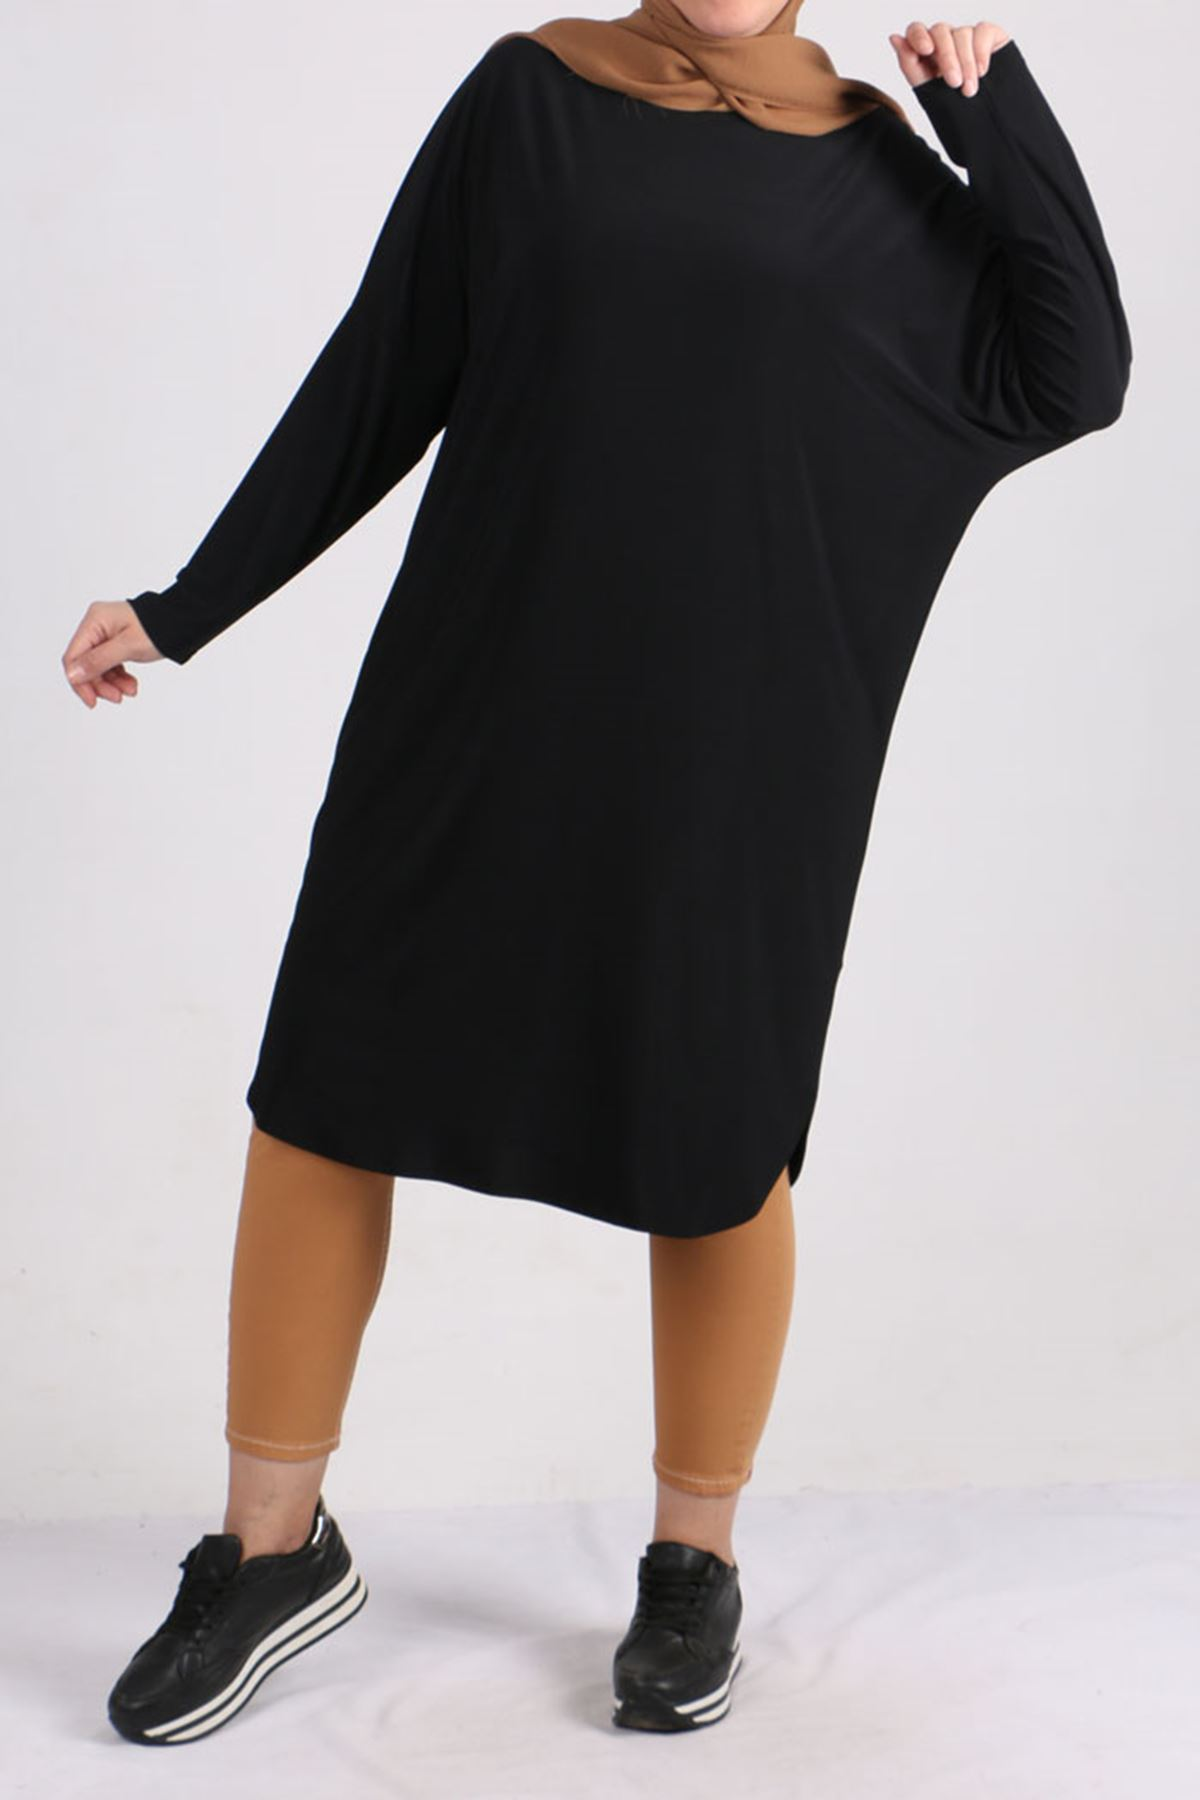 8459 Oversize with Low Sleeve Tunic - Black